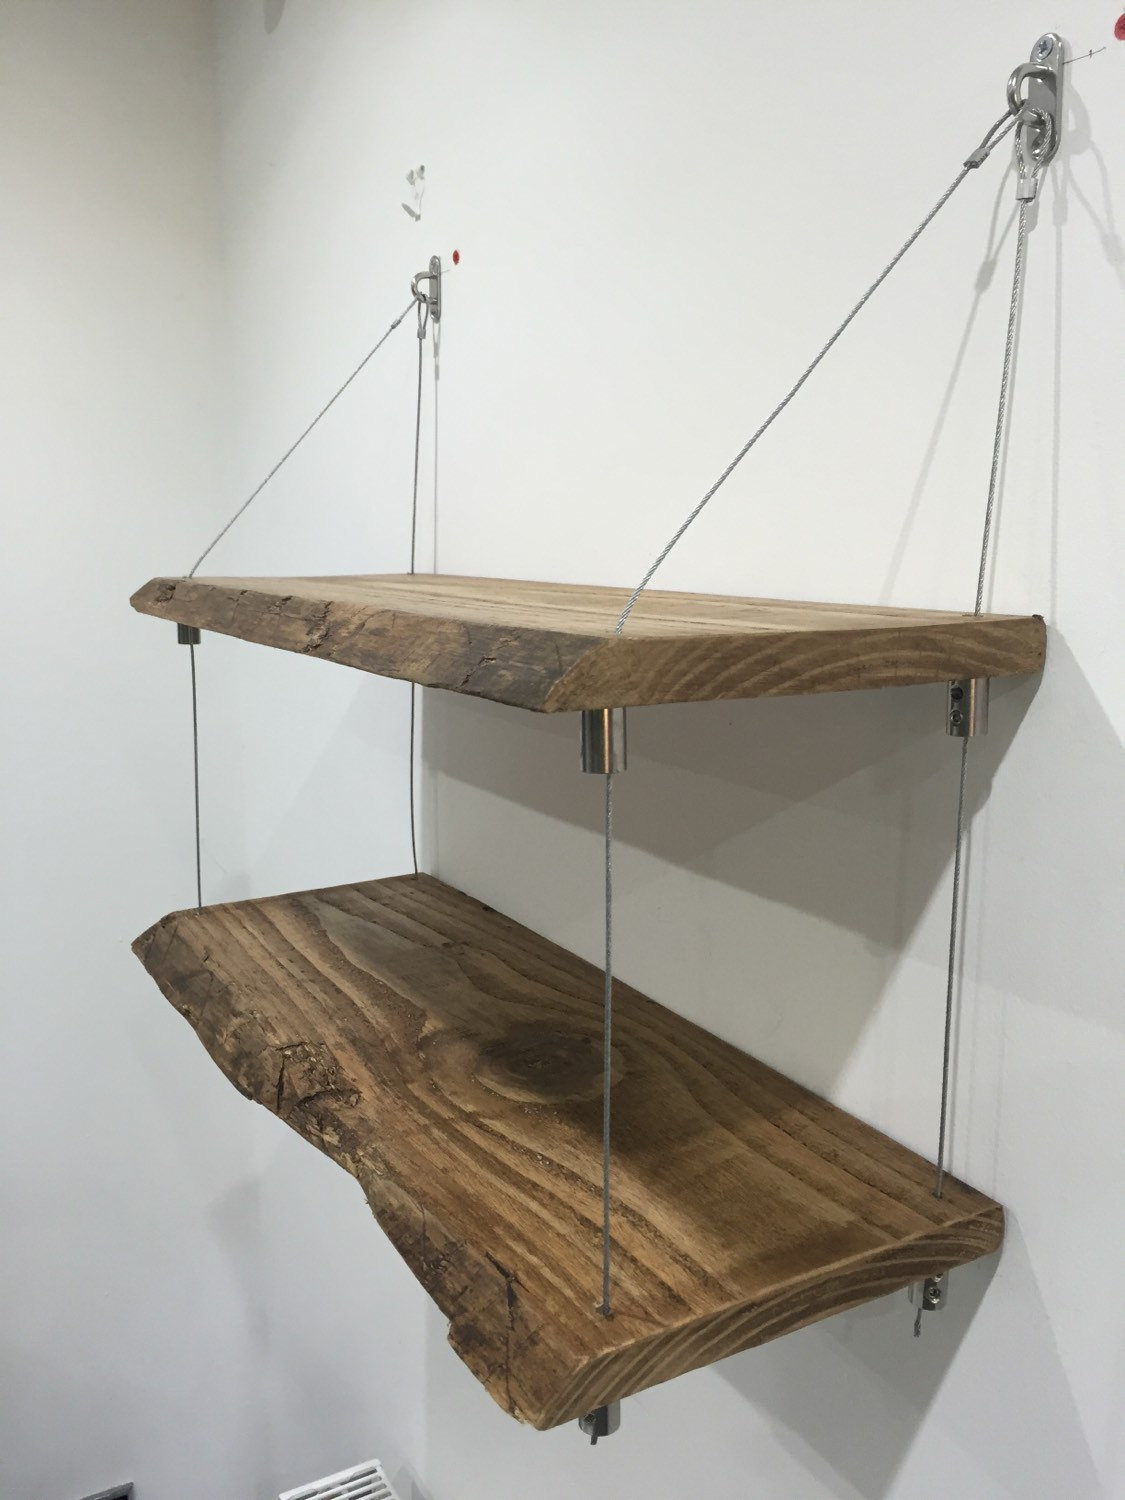 Solid wood edge shelves hanging